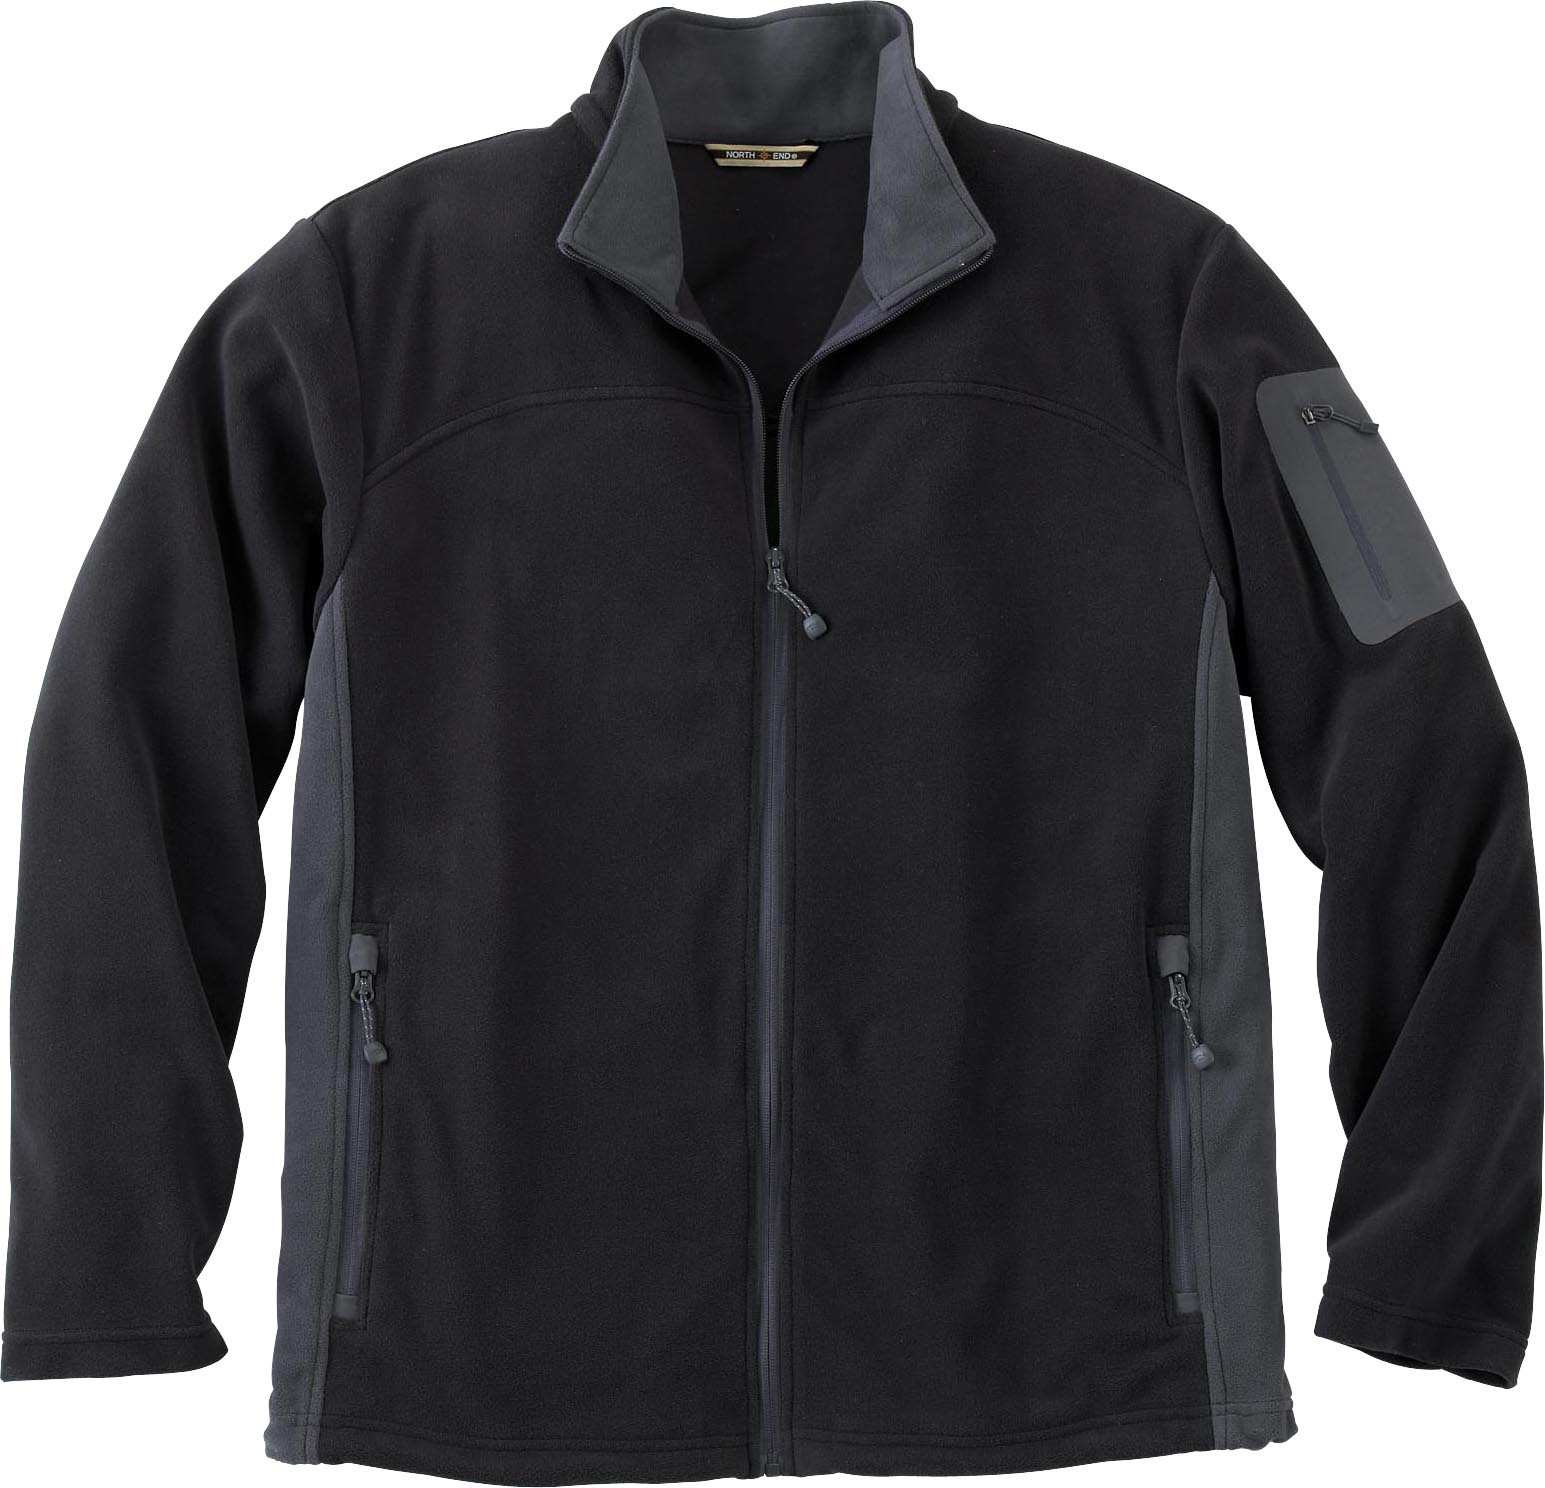 Ash City Microfleece 88123 - Men's Full-Zip Microfleece ...